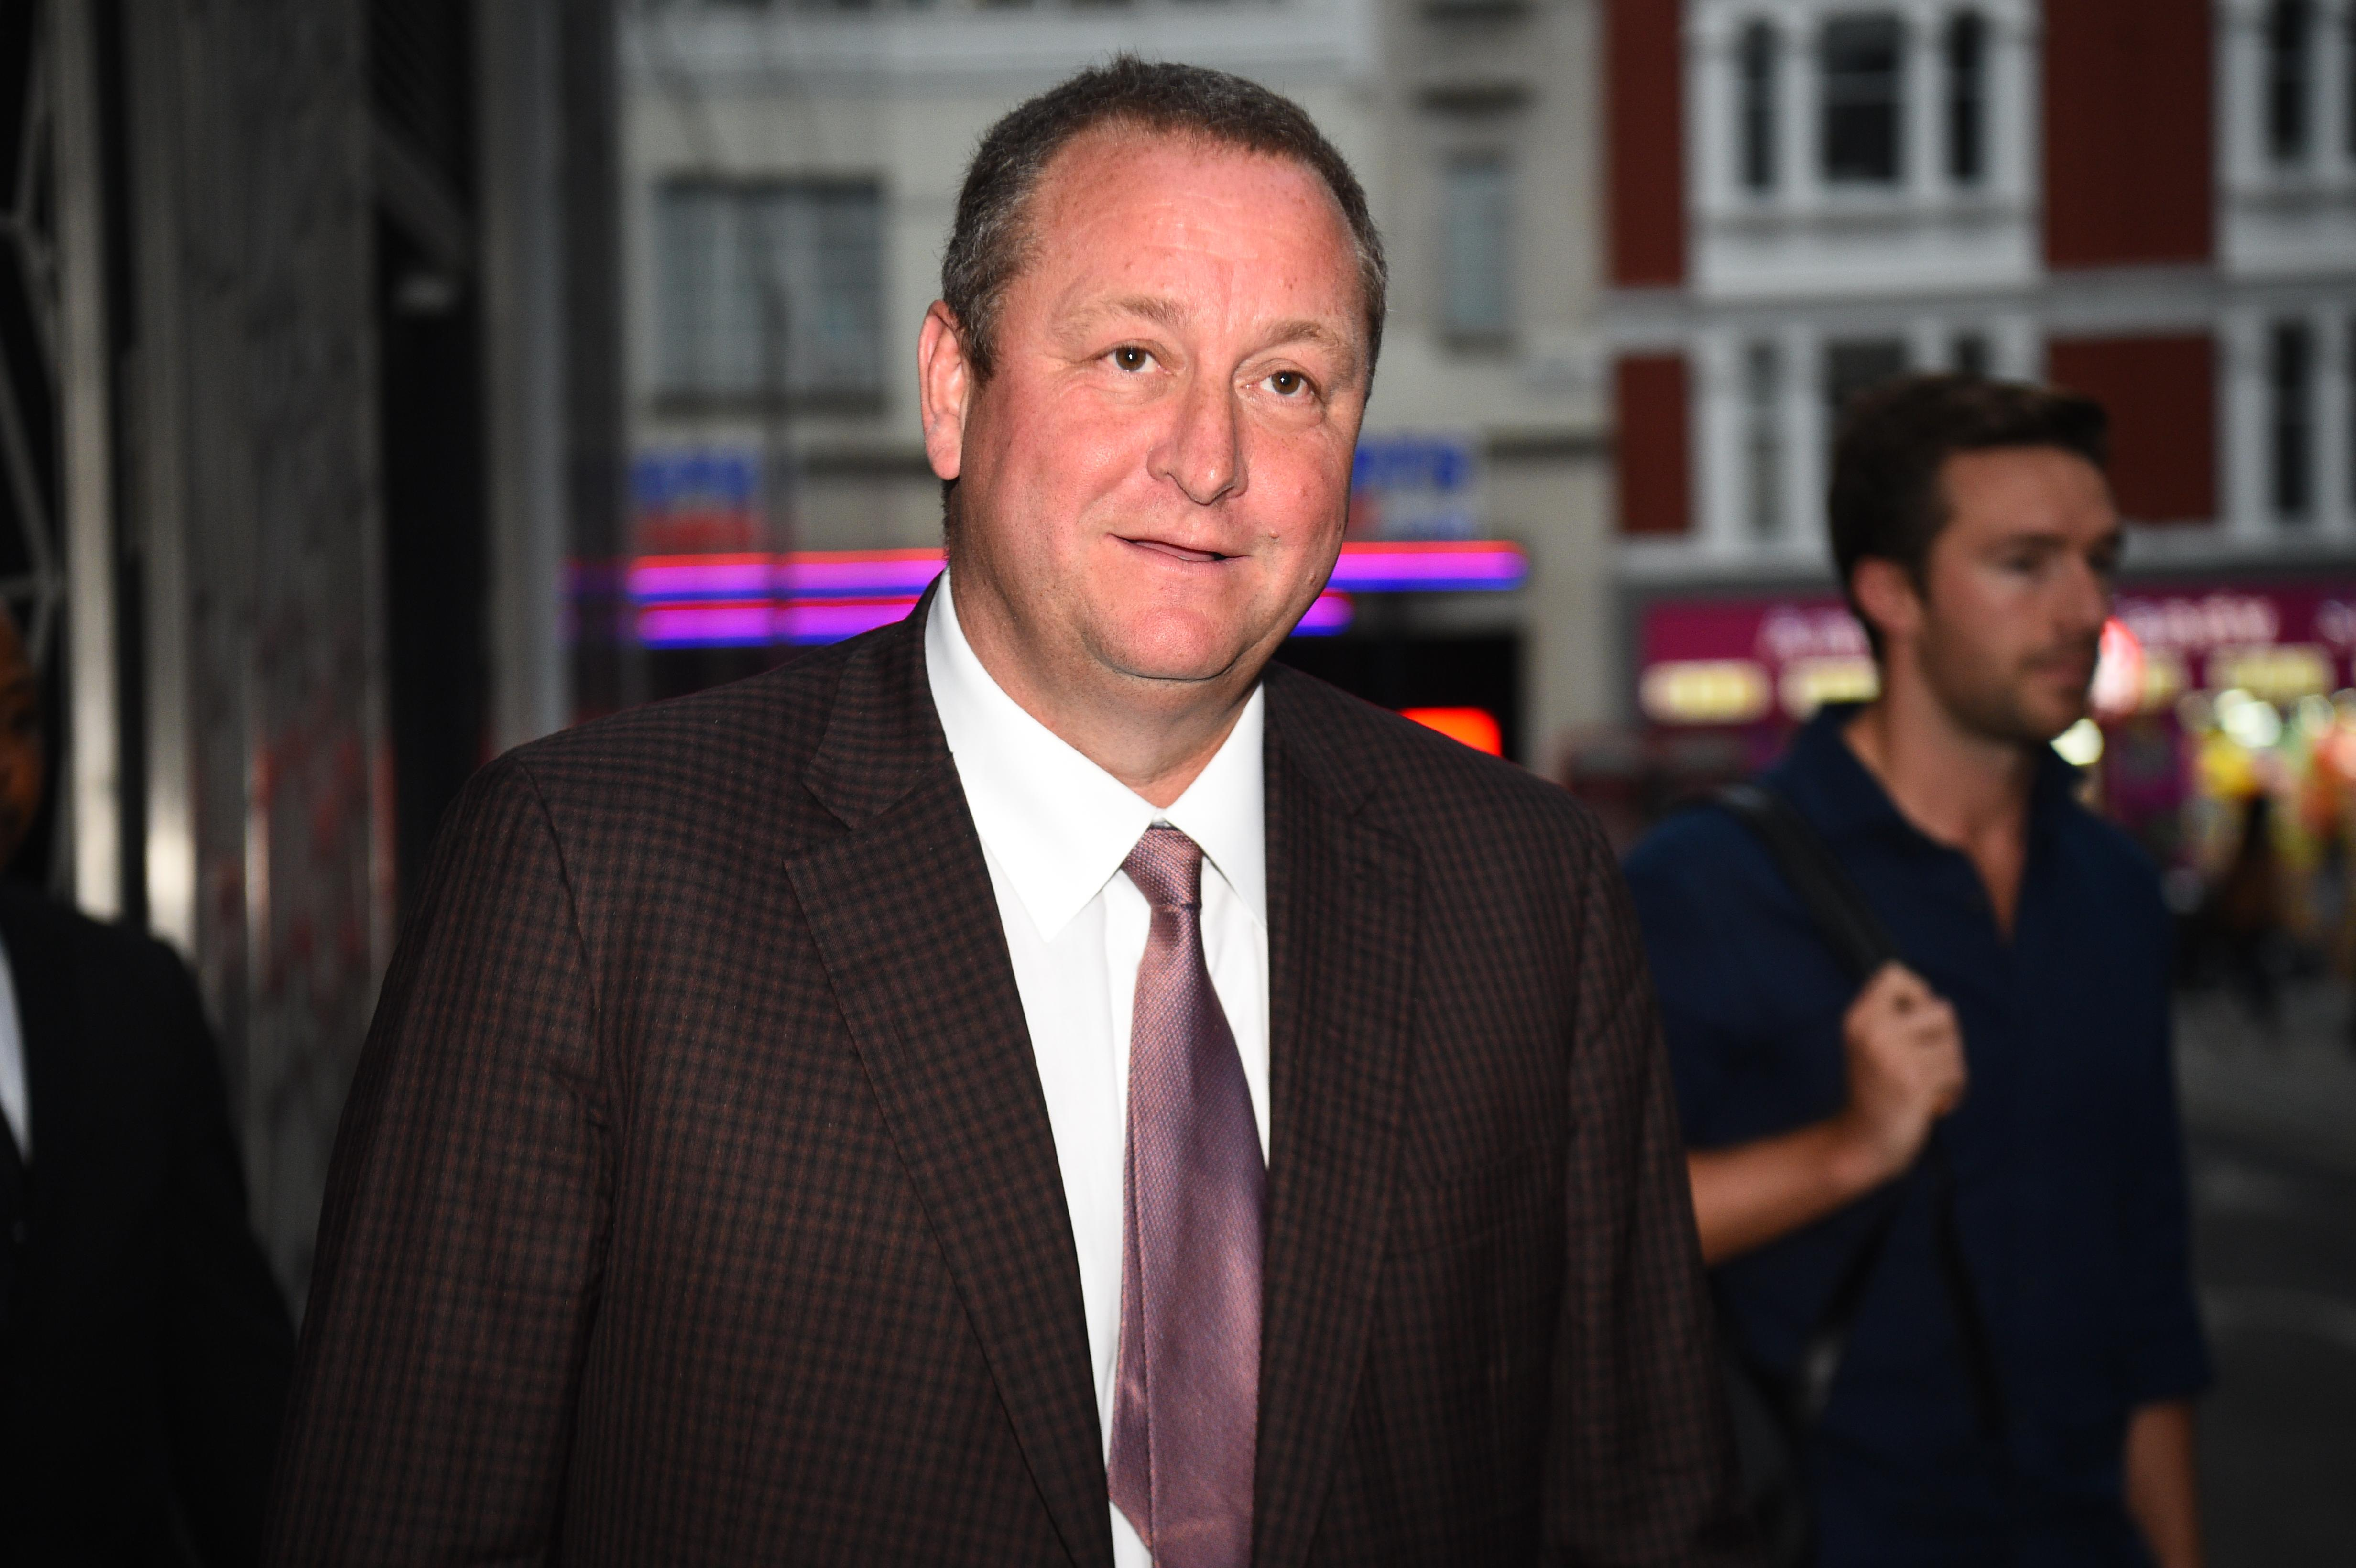 Government poised to step in as Sports Direct struggles to find auditor